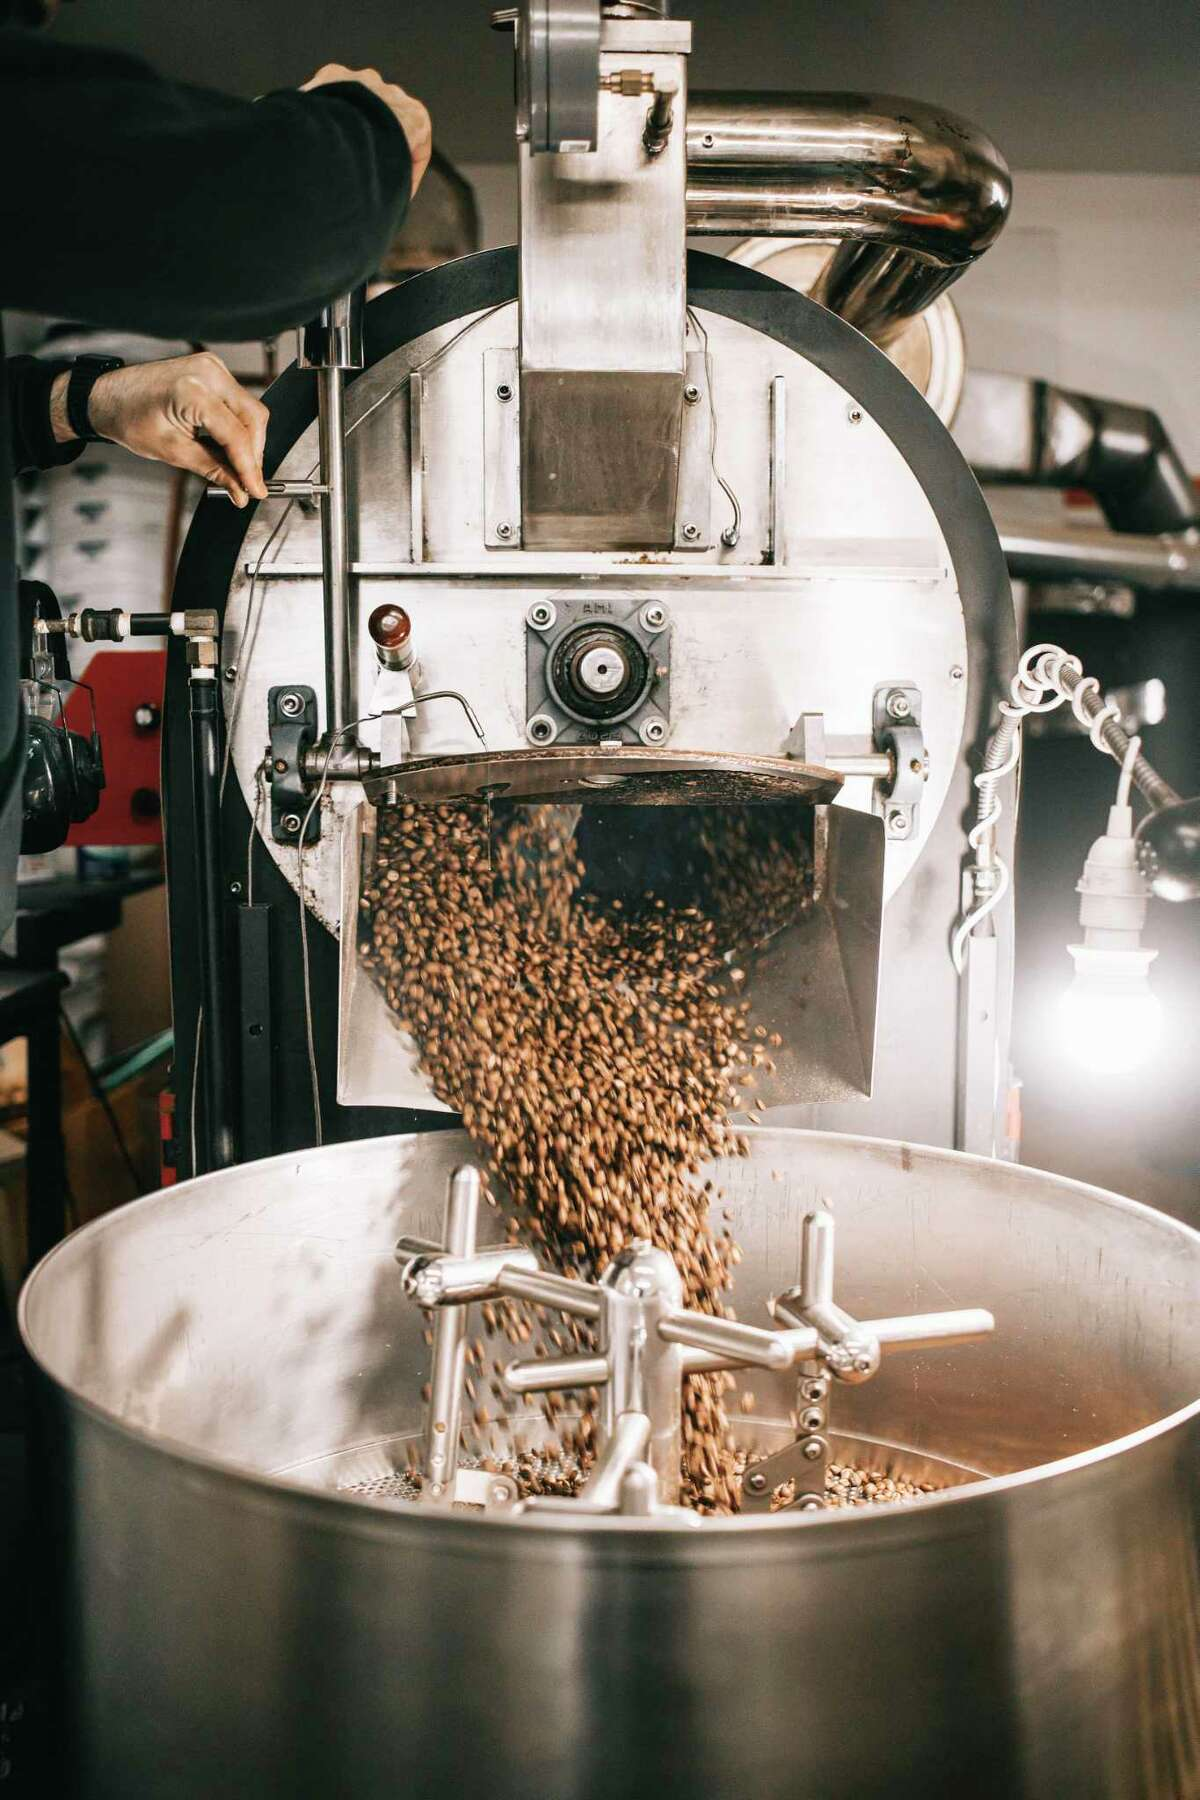 With his family rooted in the tradition of providing coffee to customers for decades, Tony Ponte III now owns and operates Graziella Coffee Co.